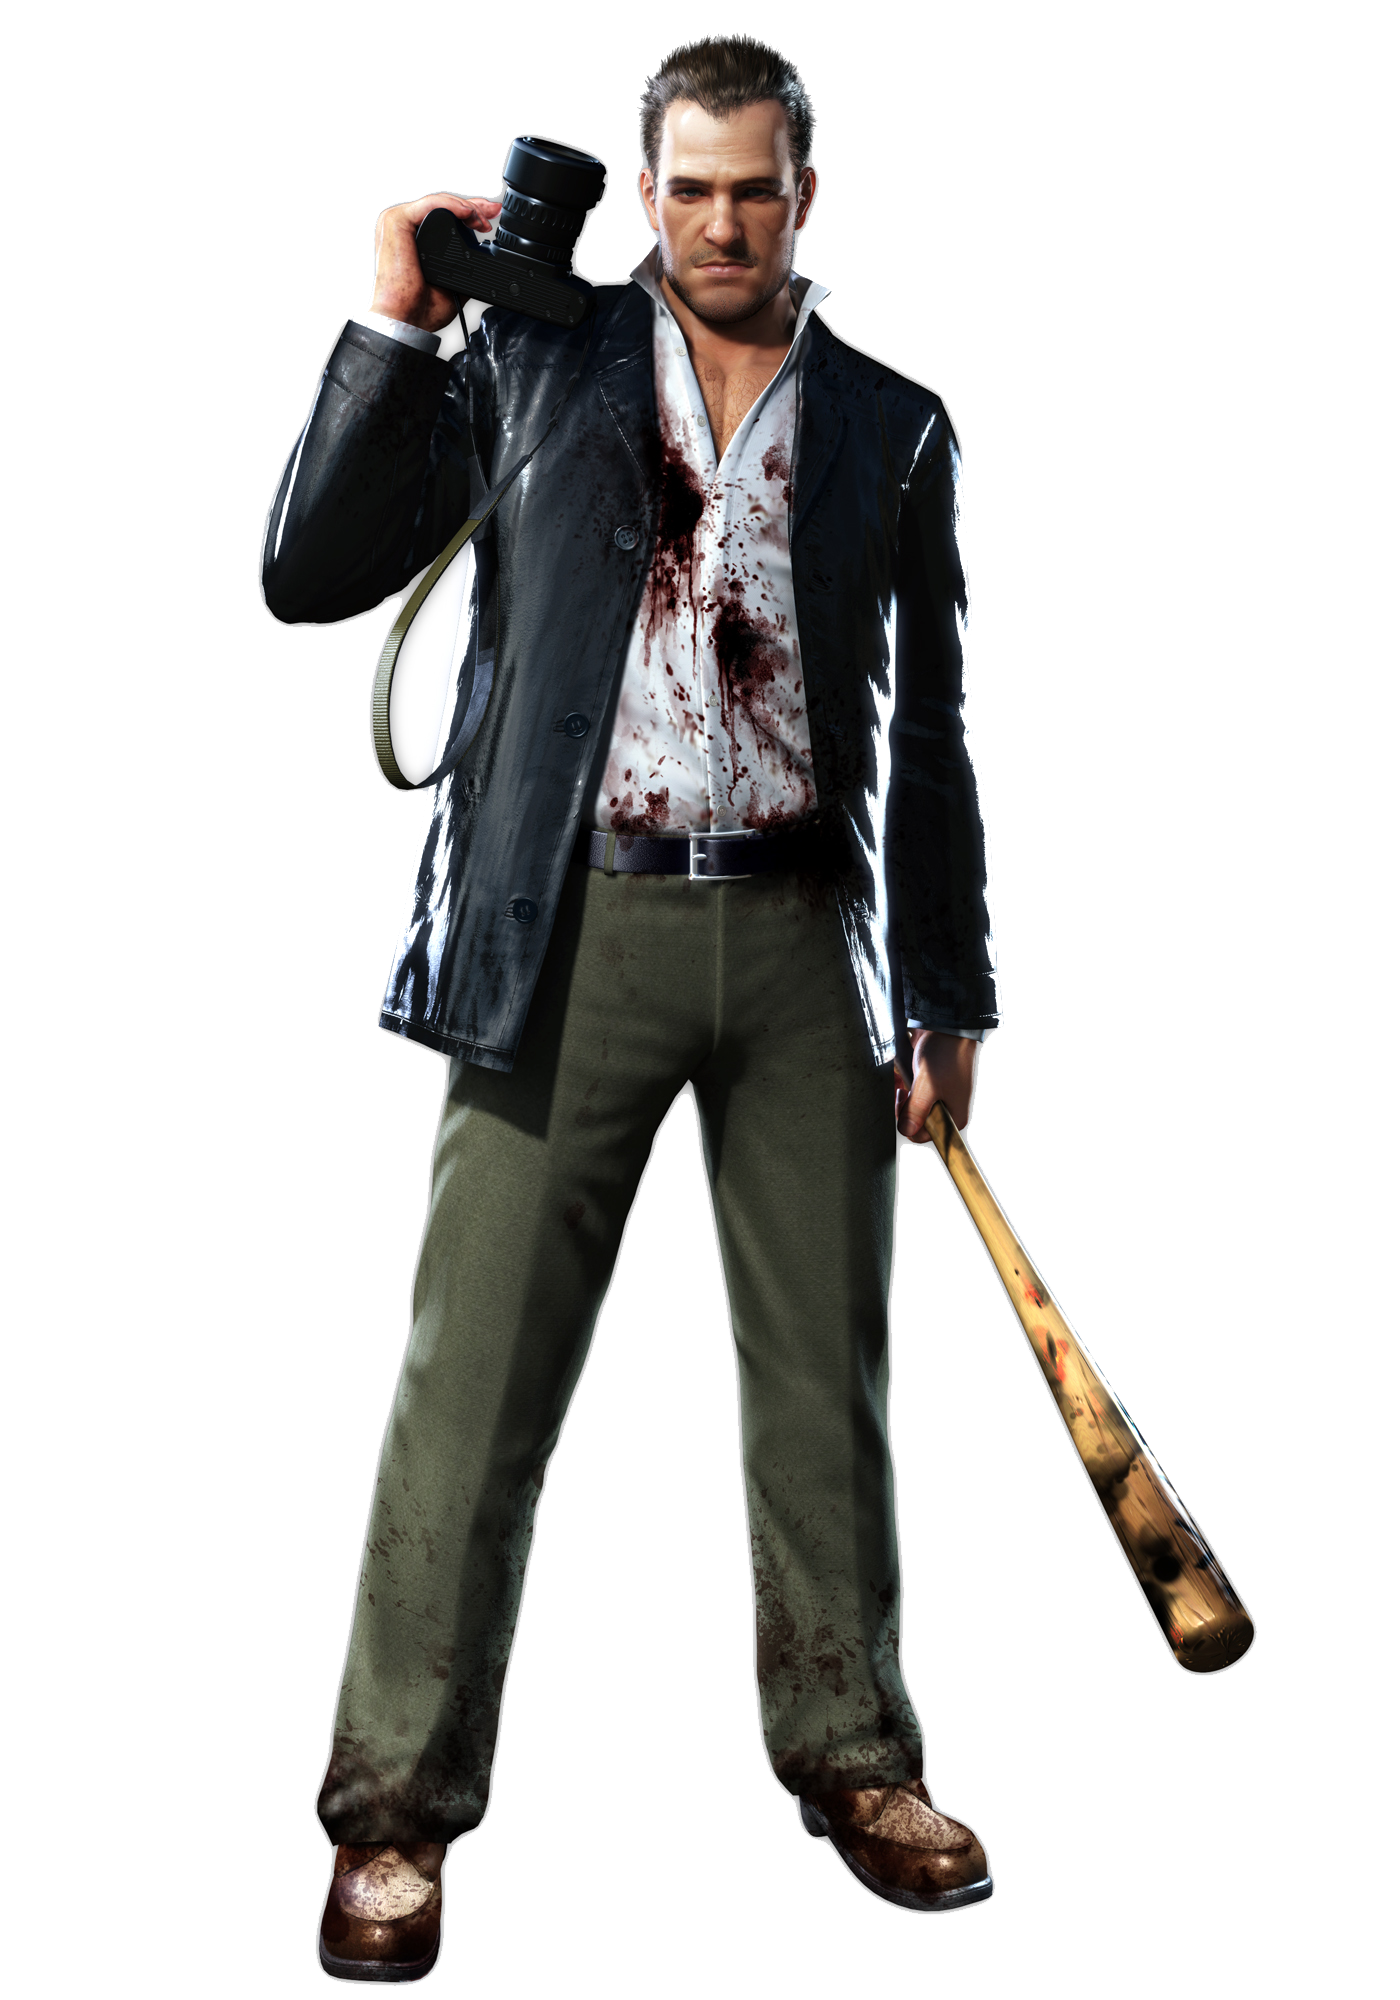 Dead Rising Png Pic PNG Image